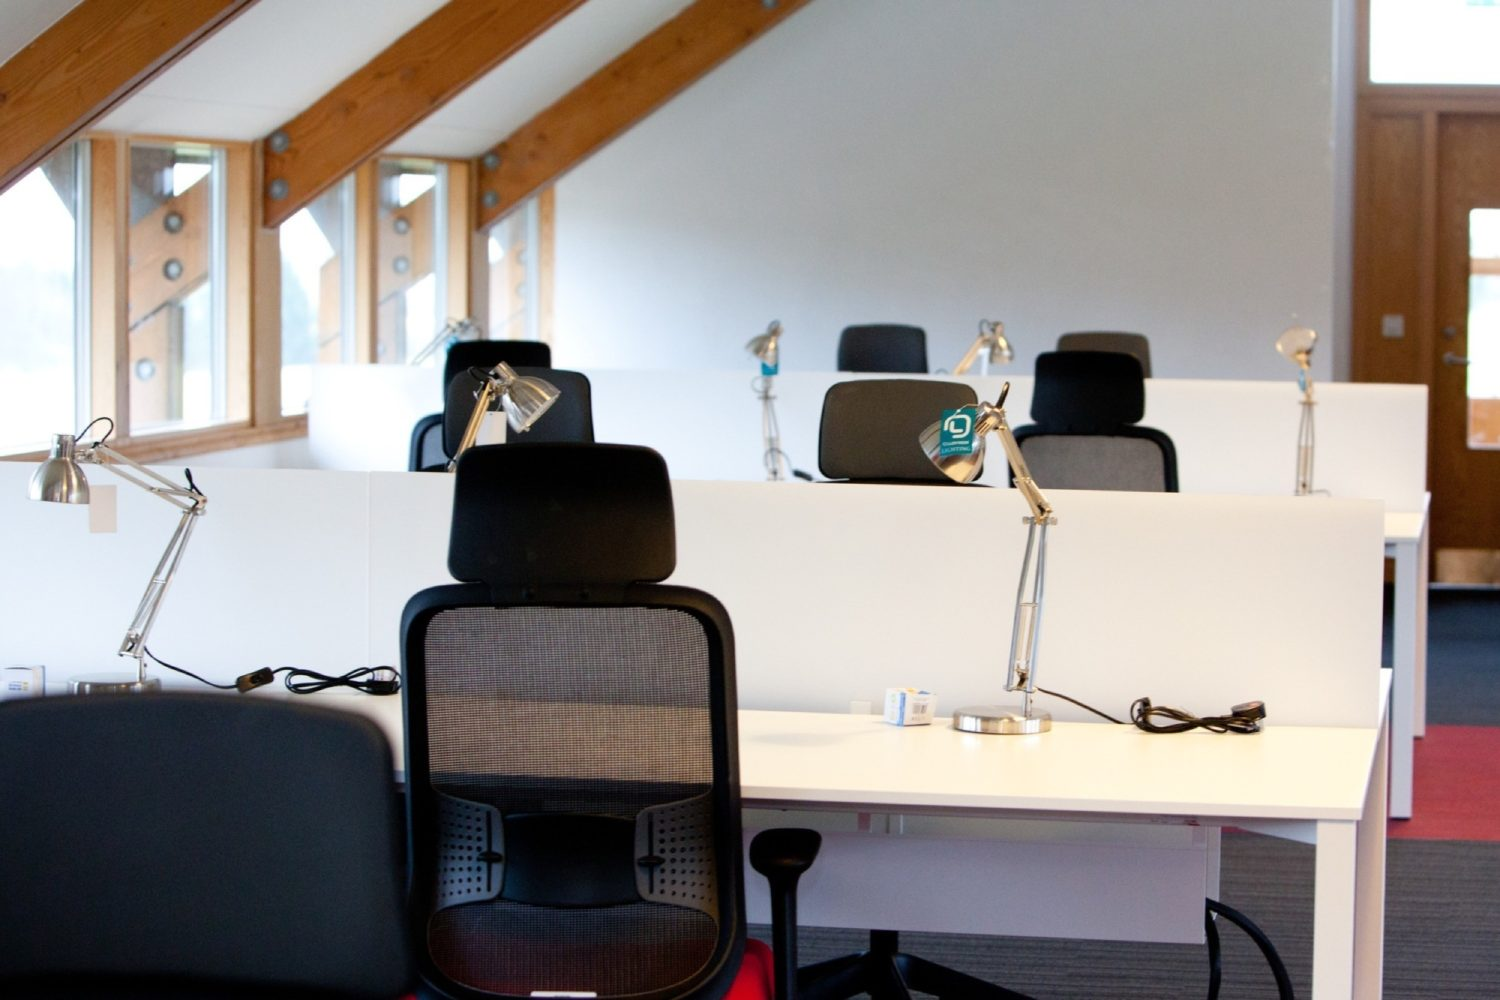 Rare Games office fit out with pitched ceilings